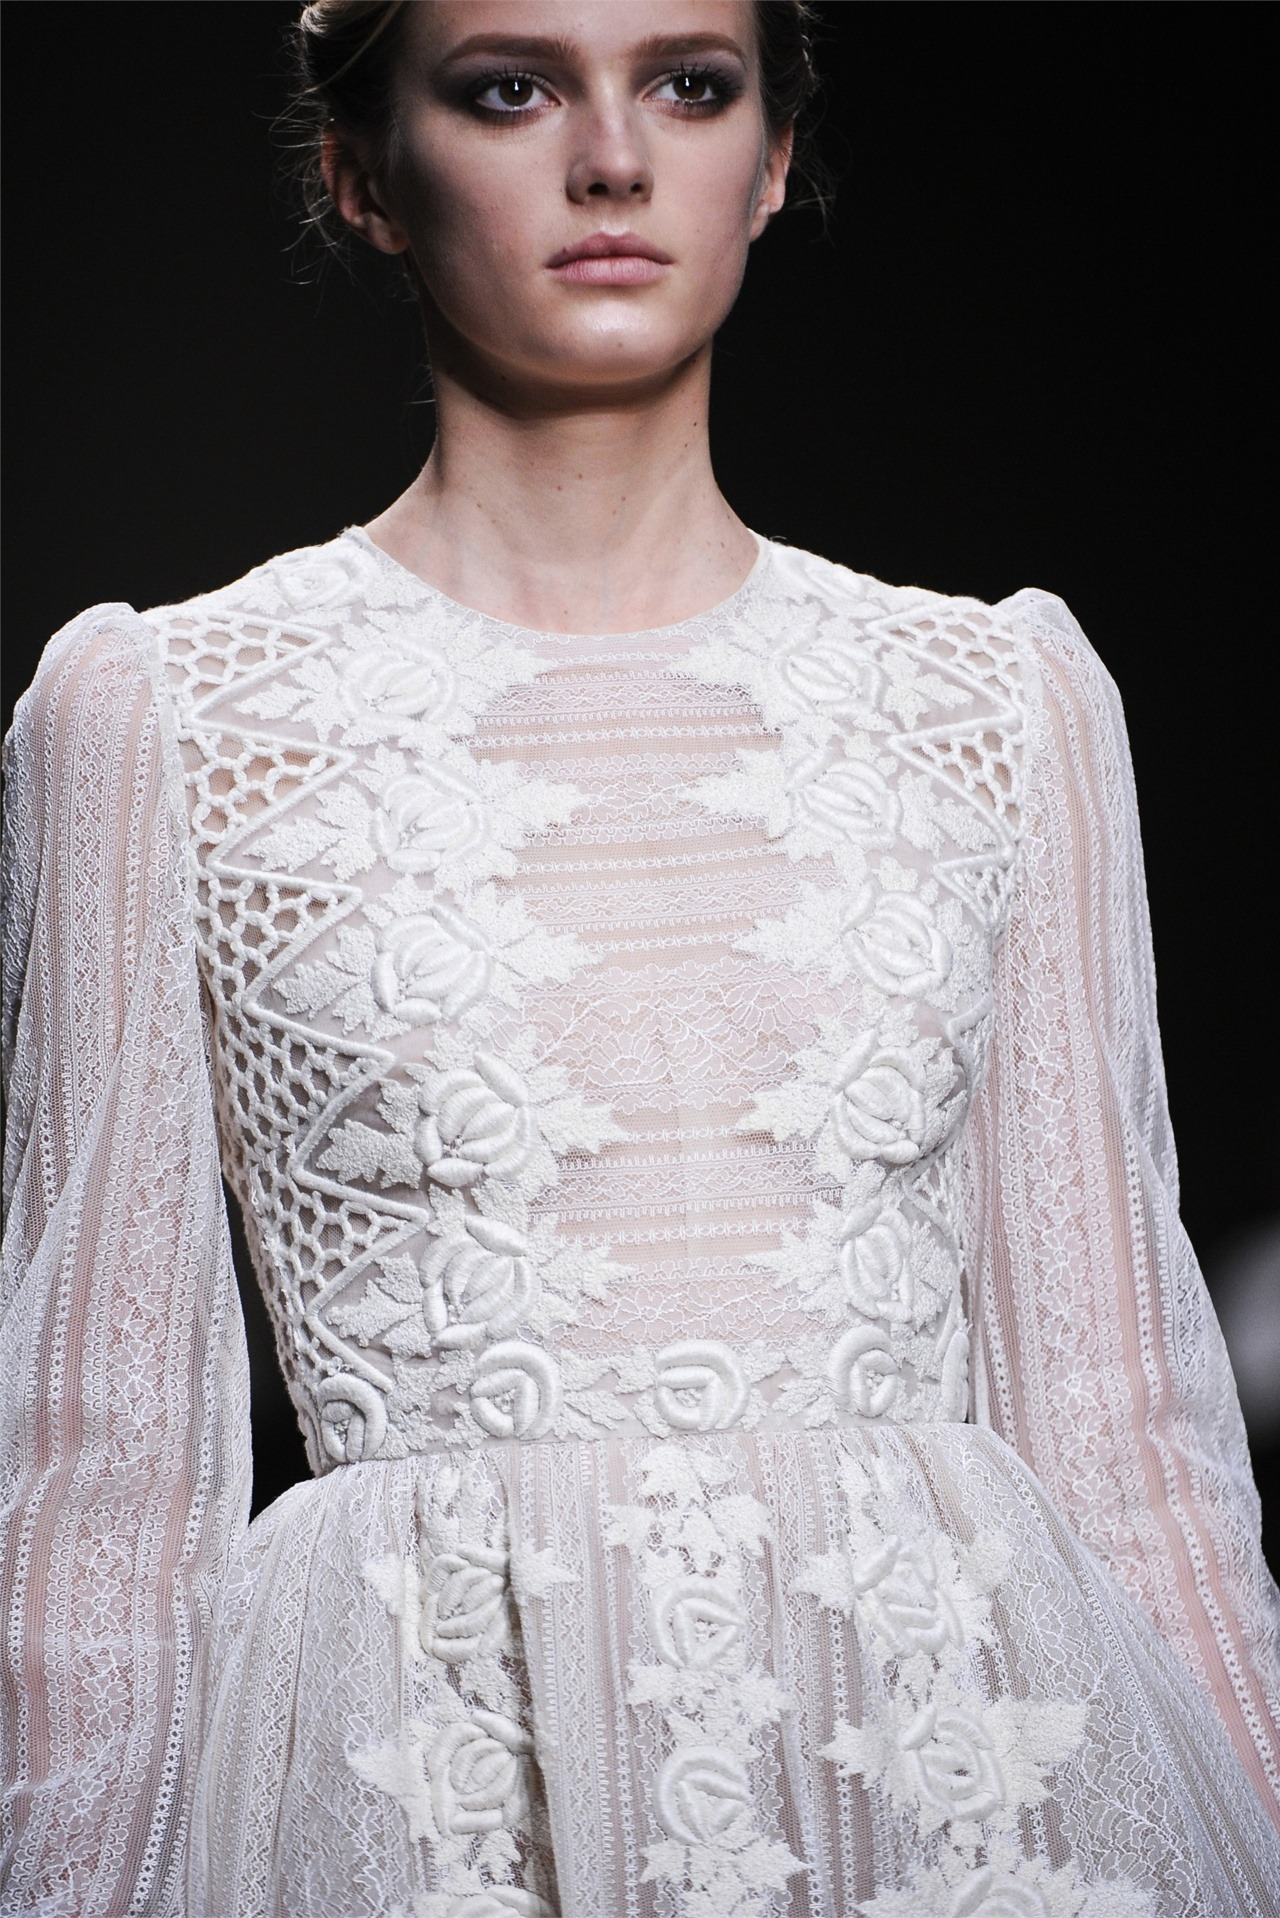 Sigrid Agren in Valentino fw12.